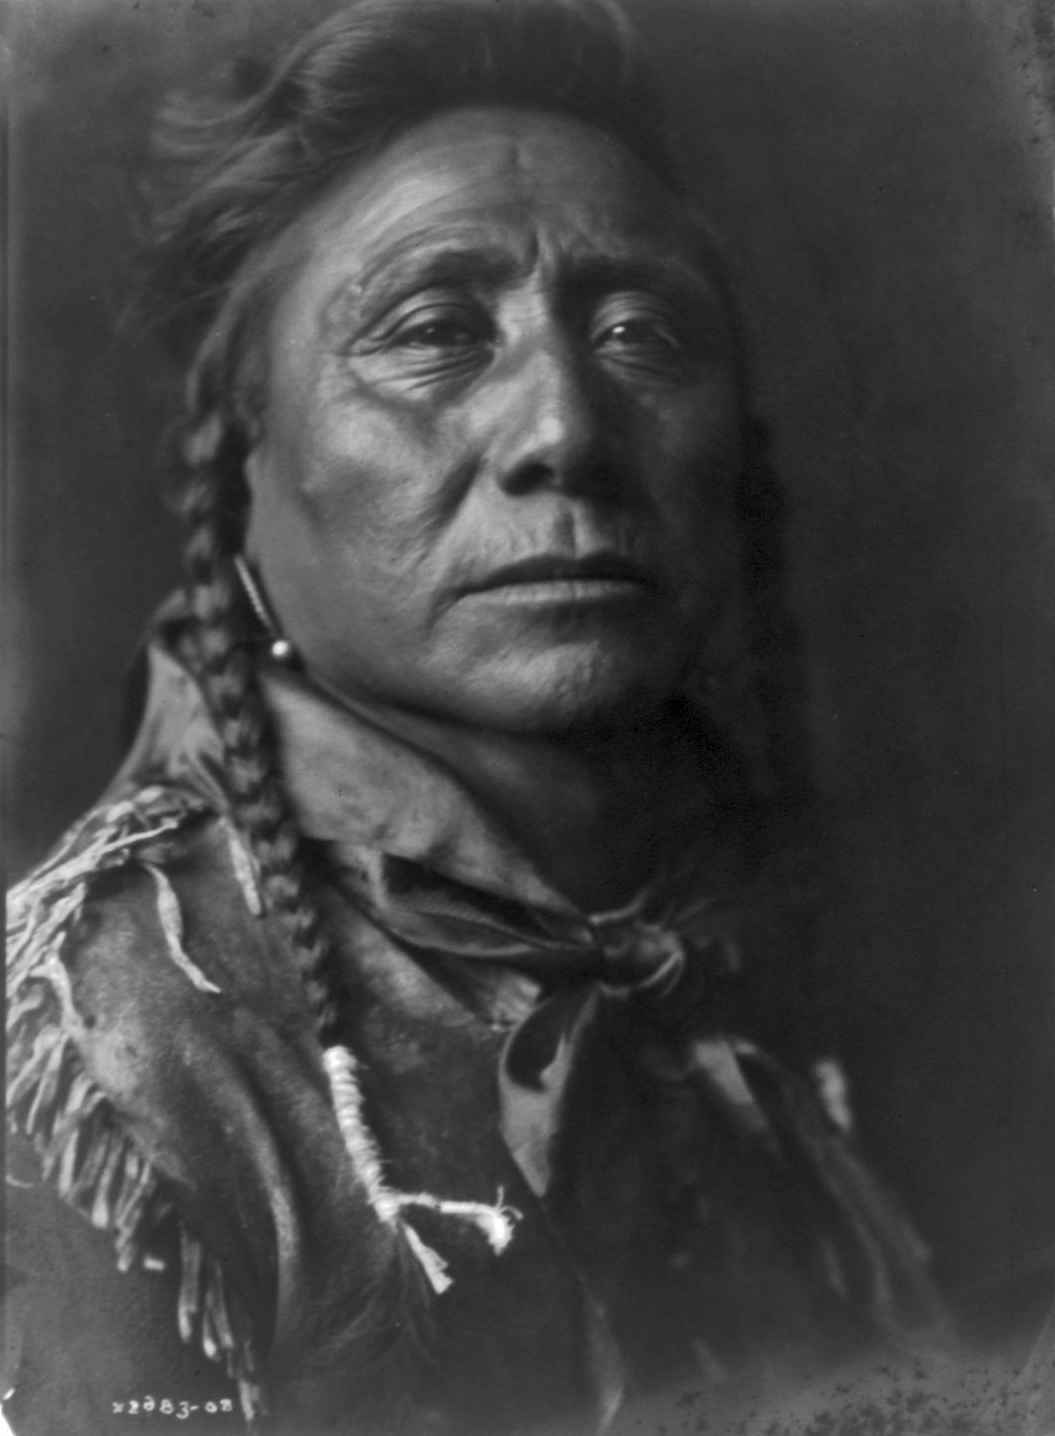 History in Photos: Edward S. Curtis - Apsaroke Indians